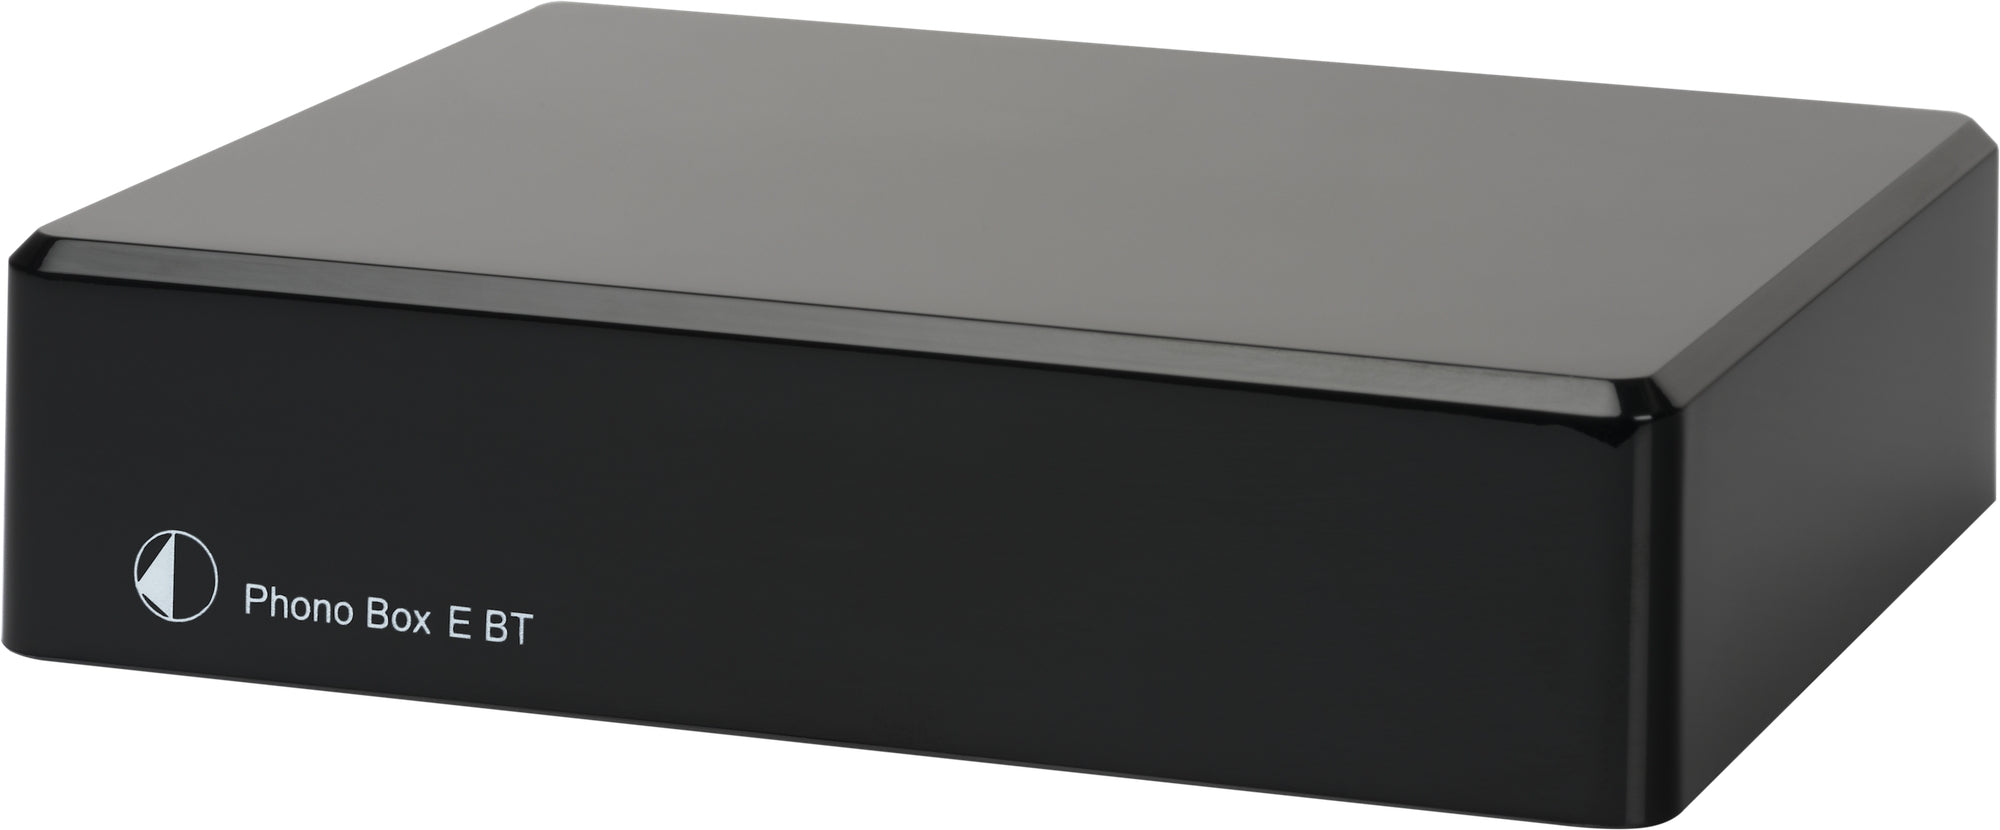 PRO-JECT PHONO BOX E BT PHONO PRE-AMPLIFIER WITH BLUETOOTH